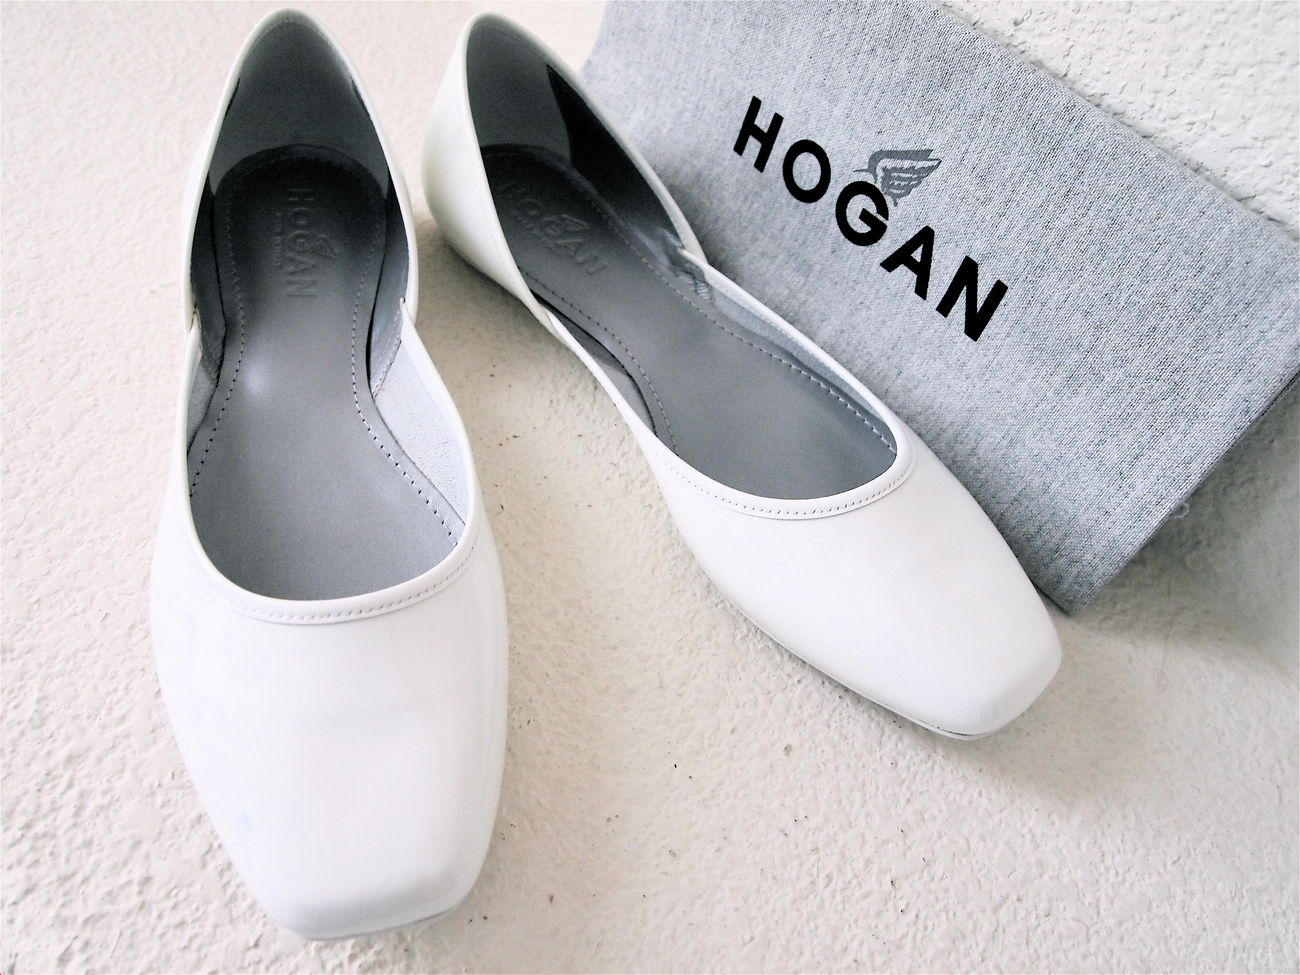 HOGAN Ballet Flats in White 8.5